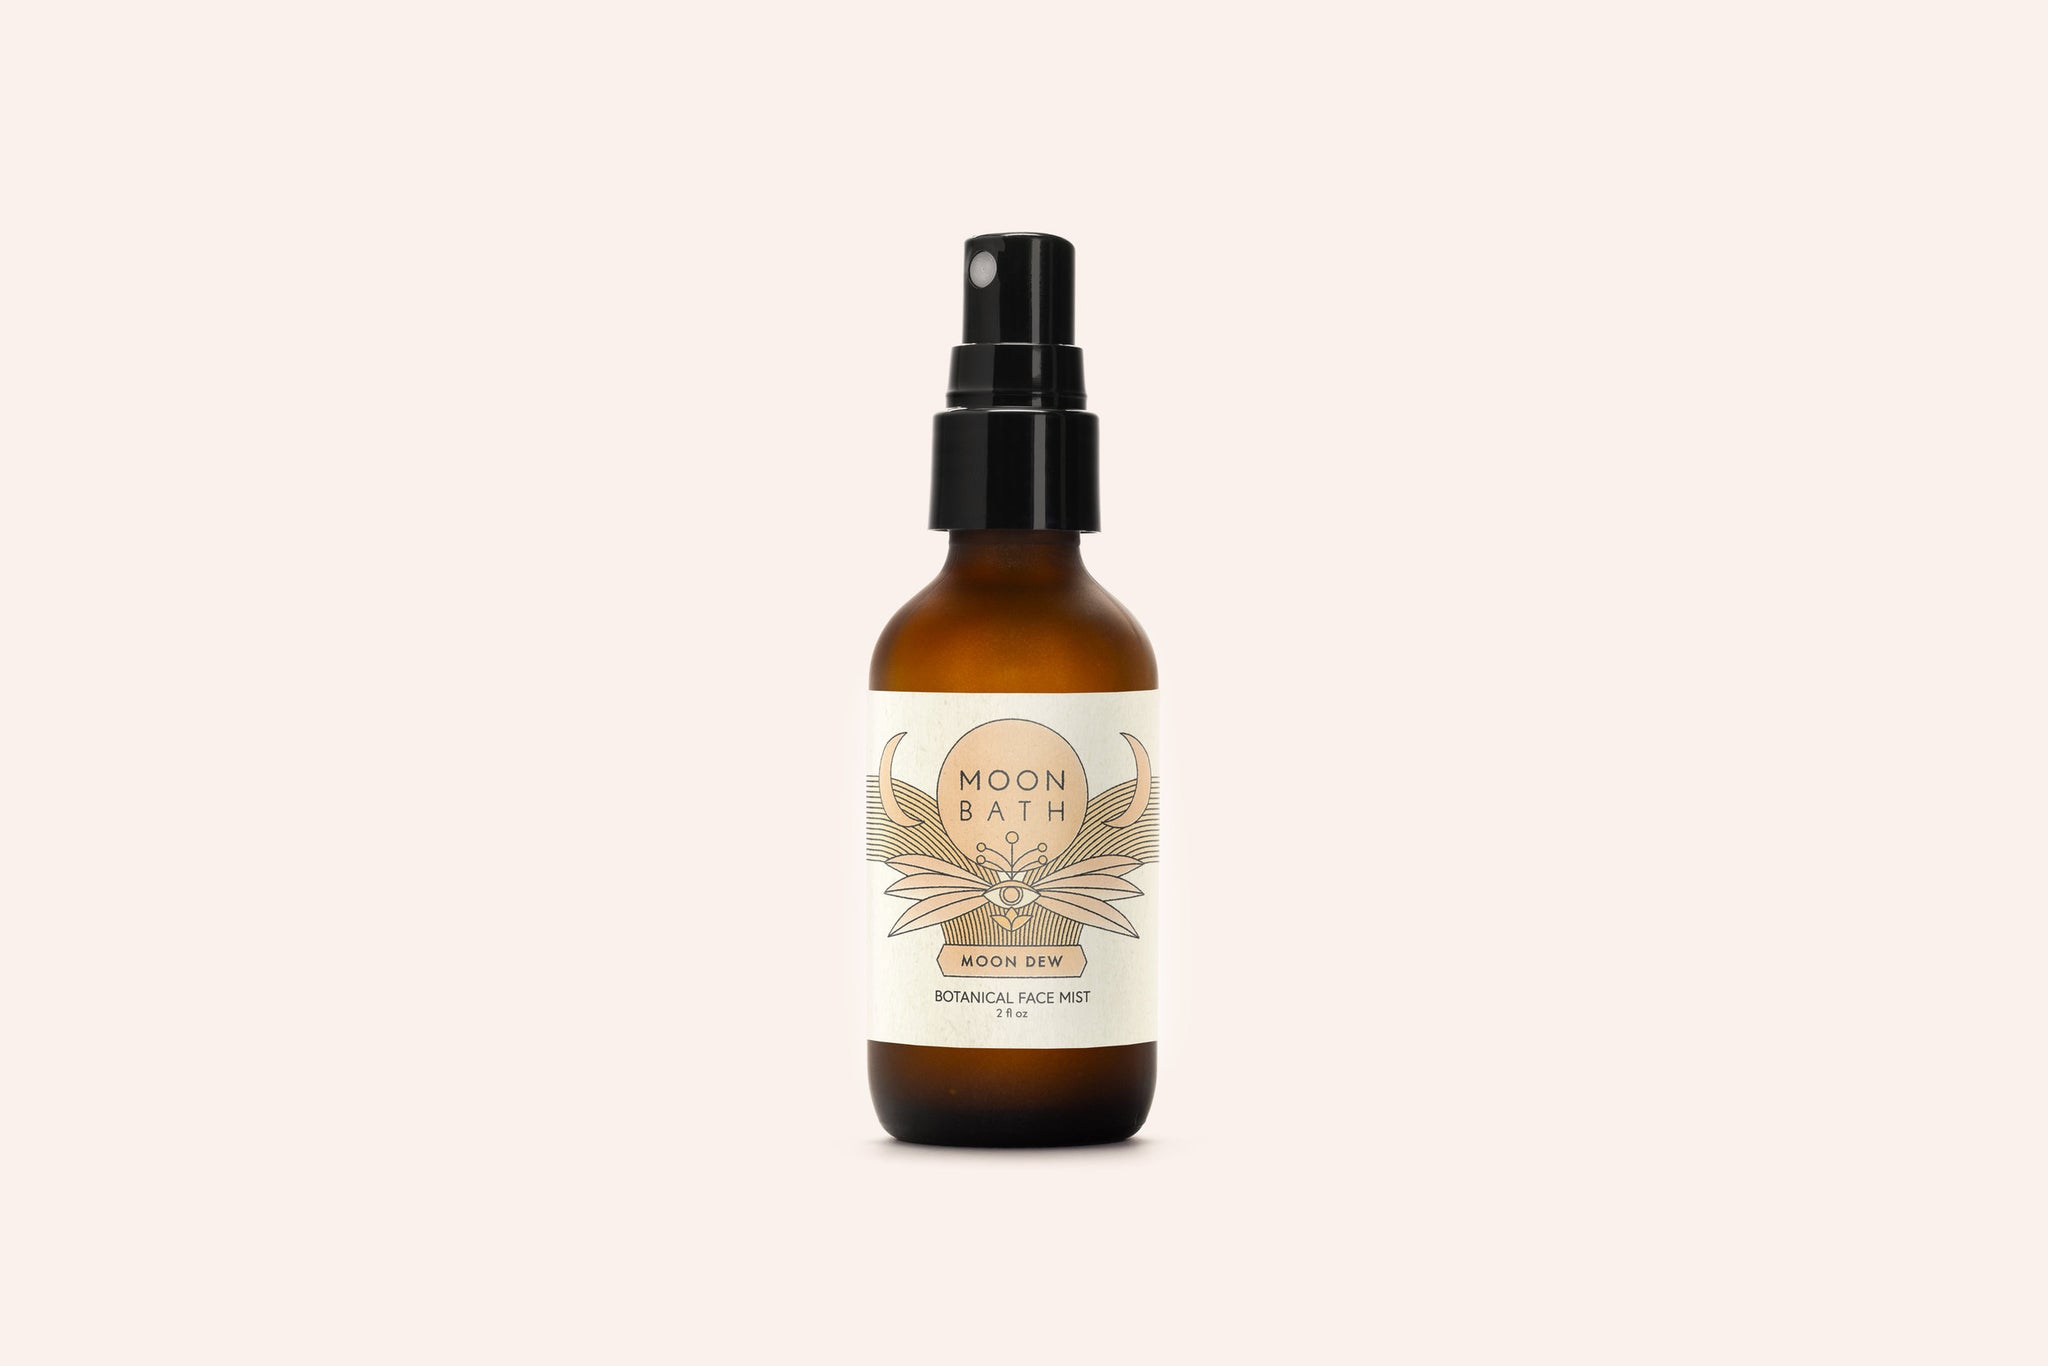 Moon Dew Botanical Face Mist